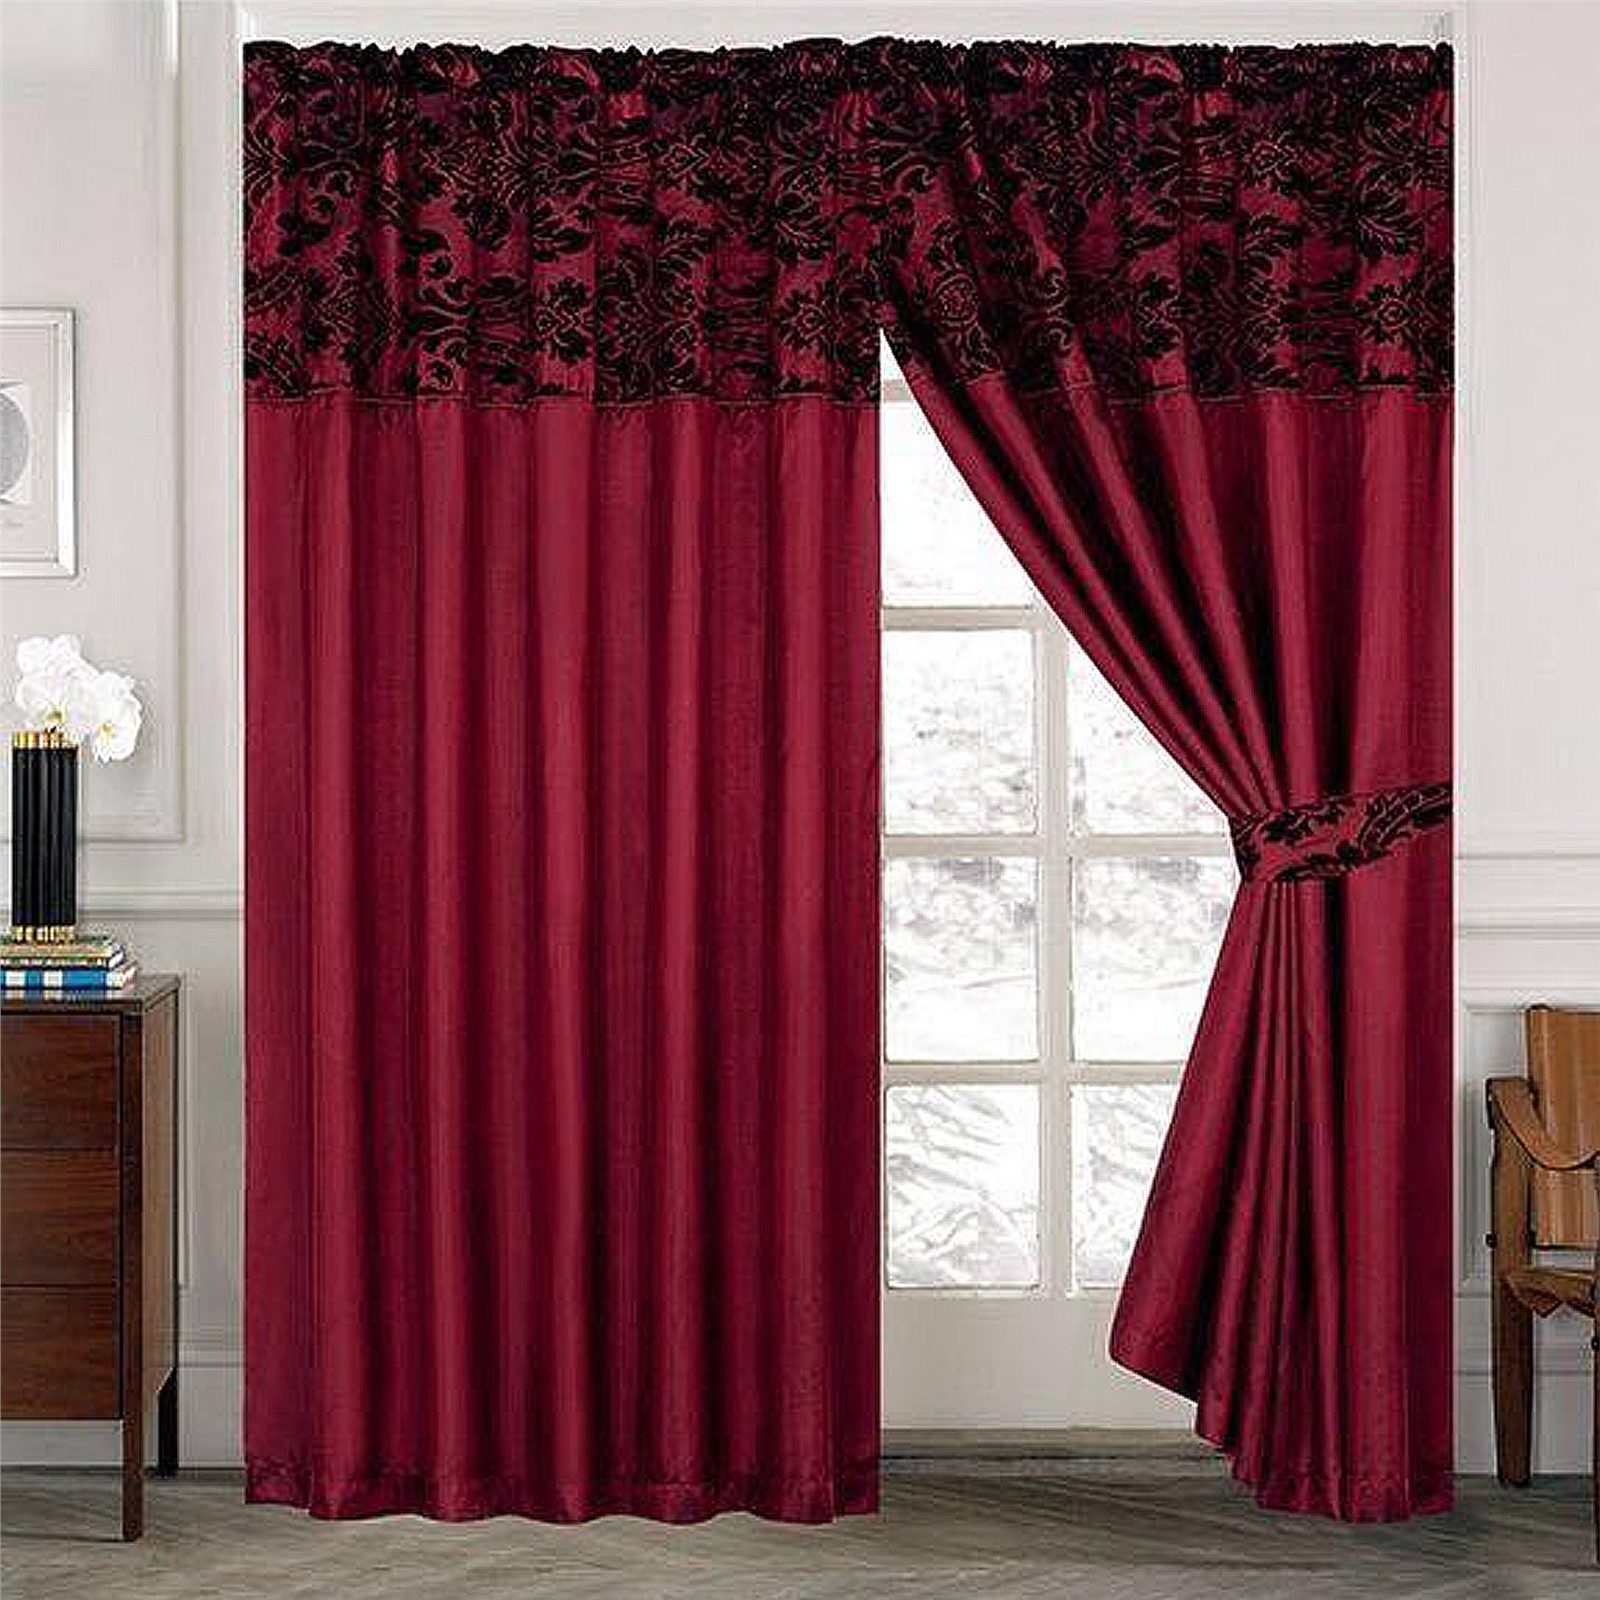 damask curtains pair of half flock pencil pleat window curtain ebay